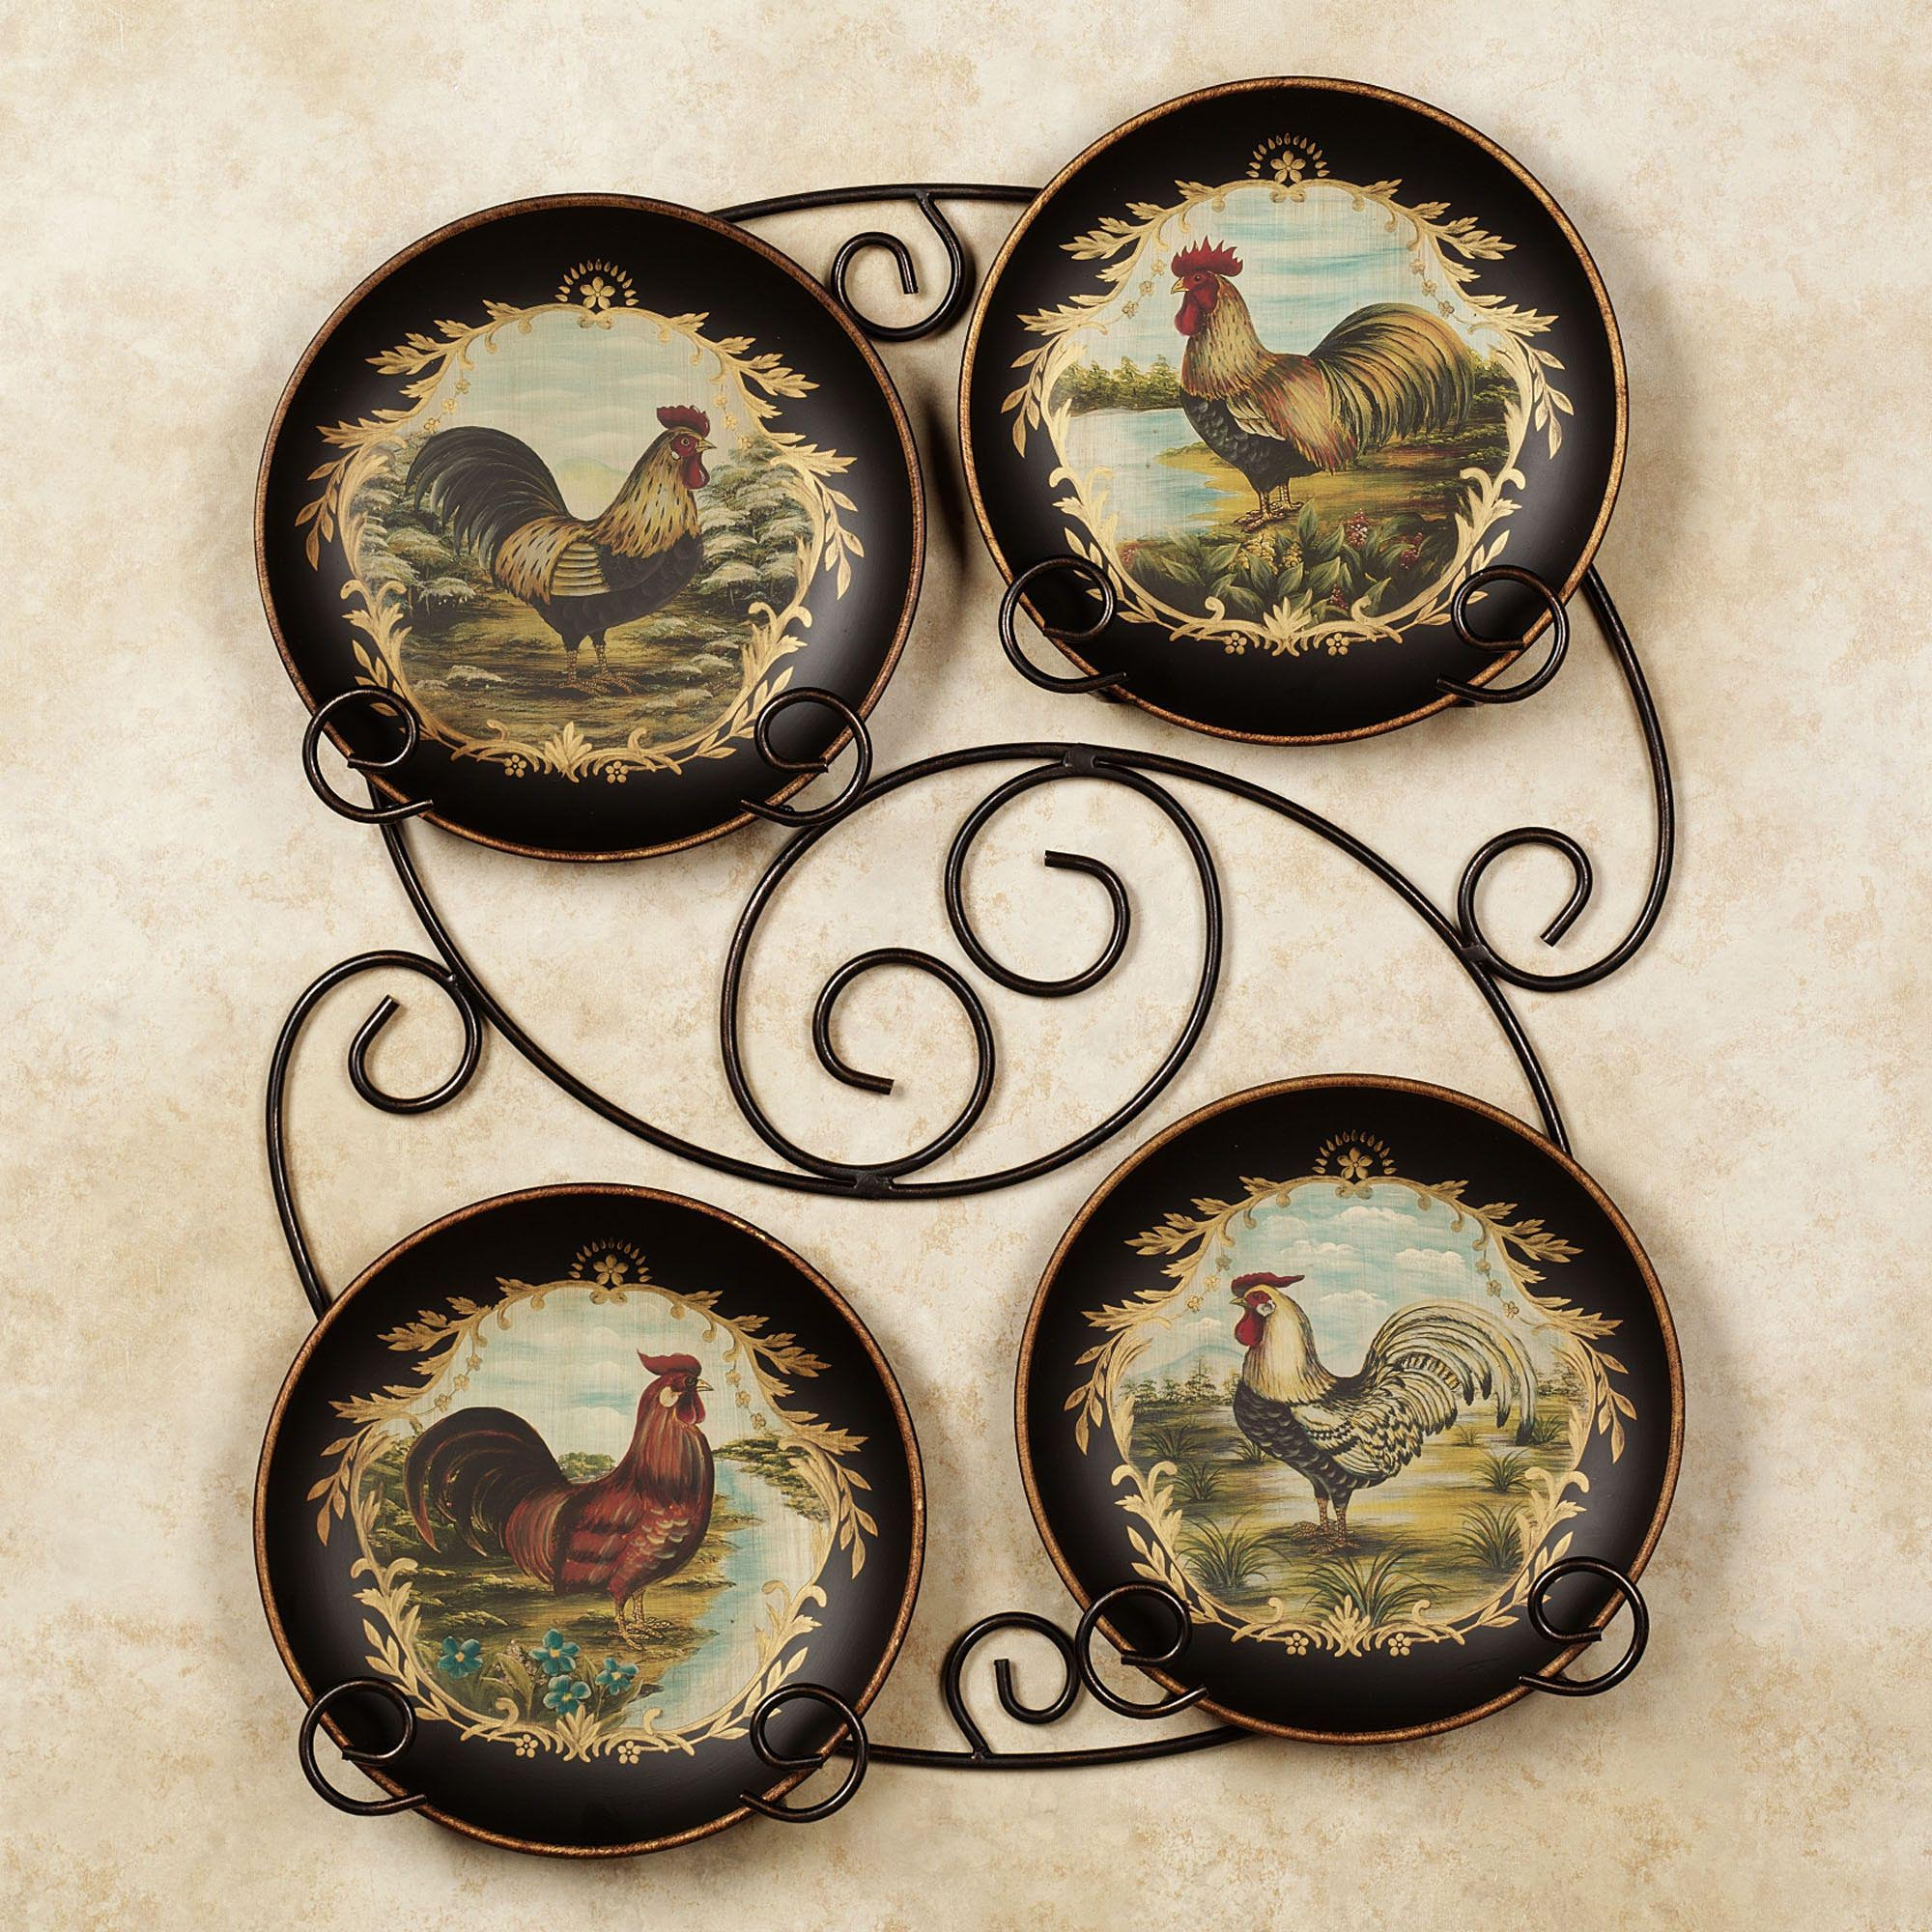 Wall Hangers for Decorative Plates